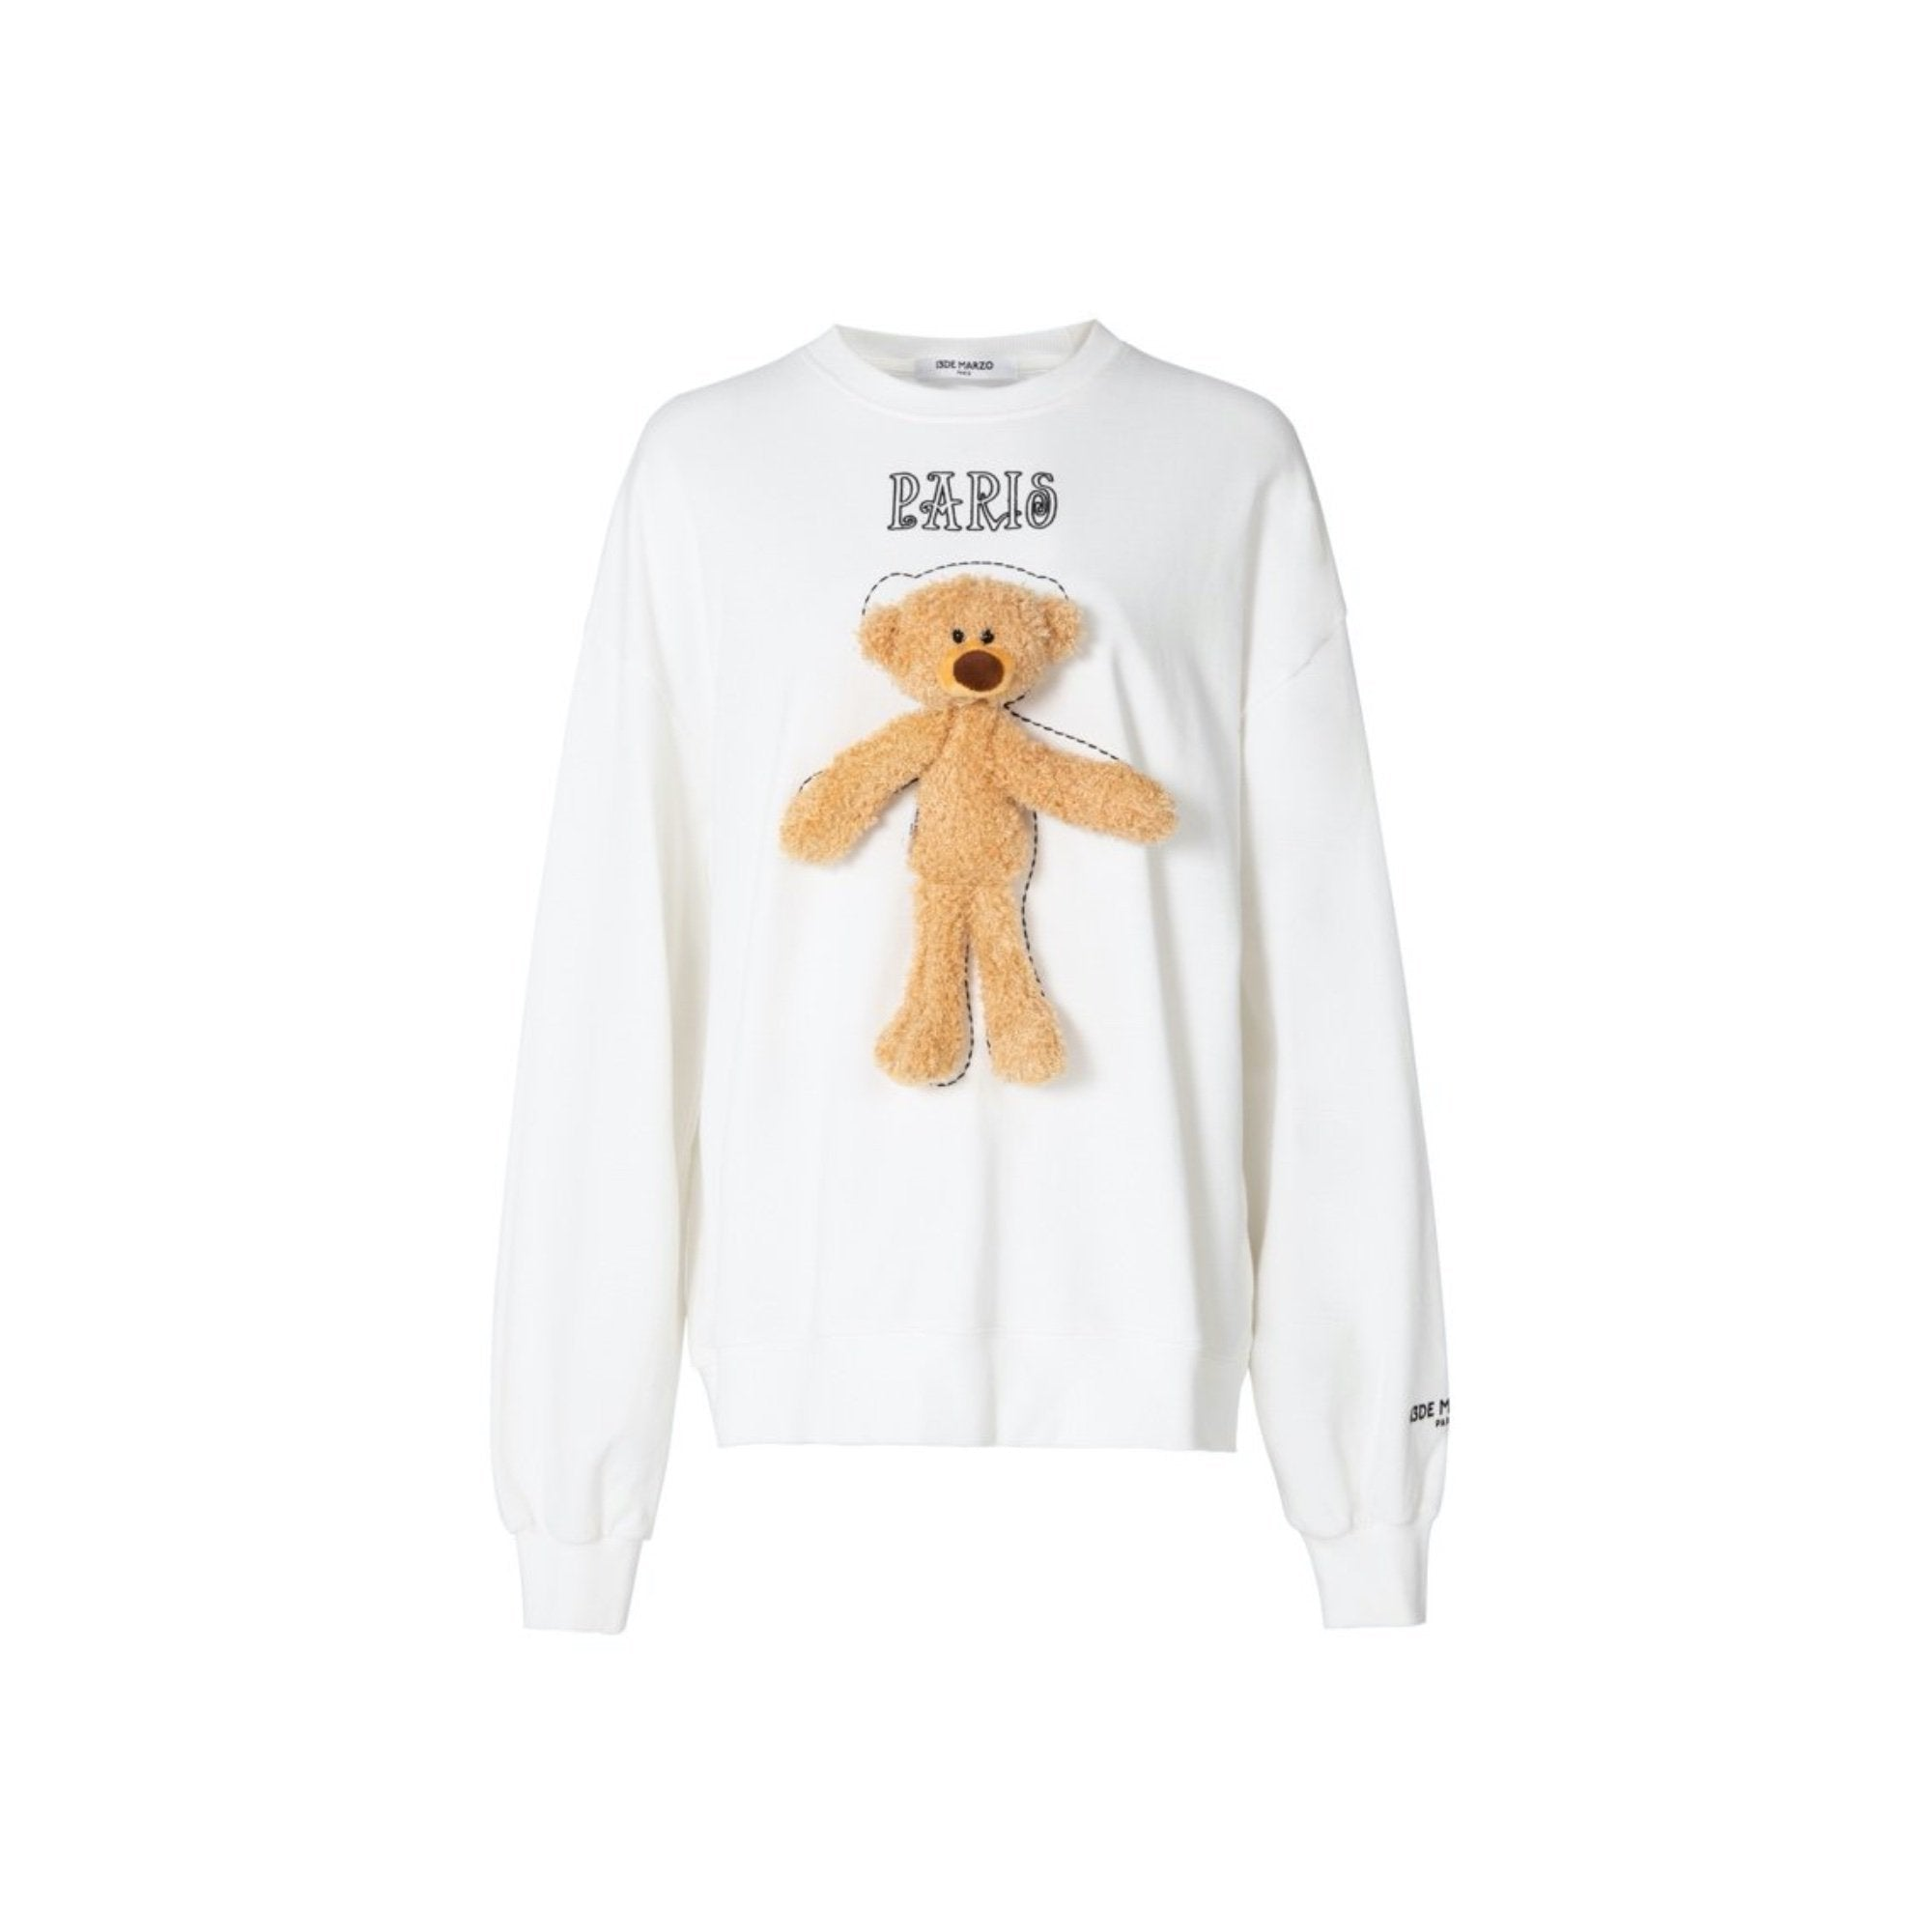 13 DE MARZO Tiny Teddy Bear Sweater White | MADA IN CHINA